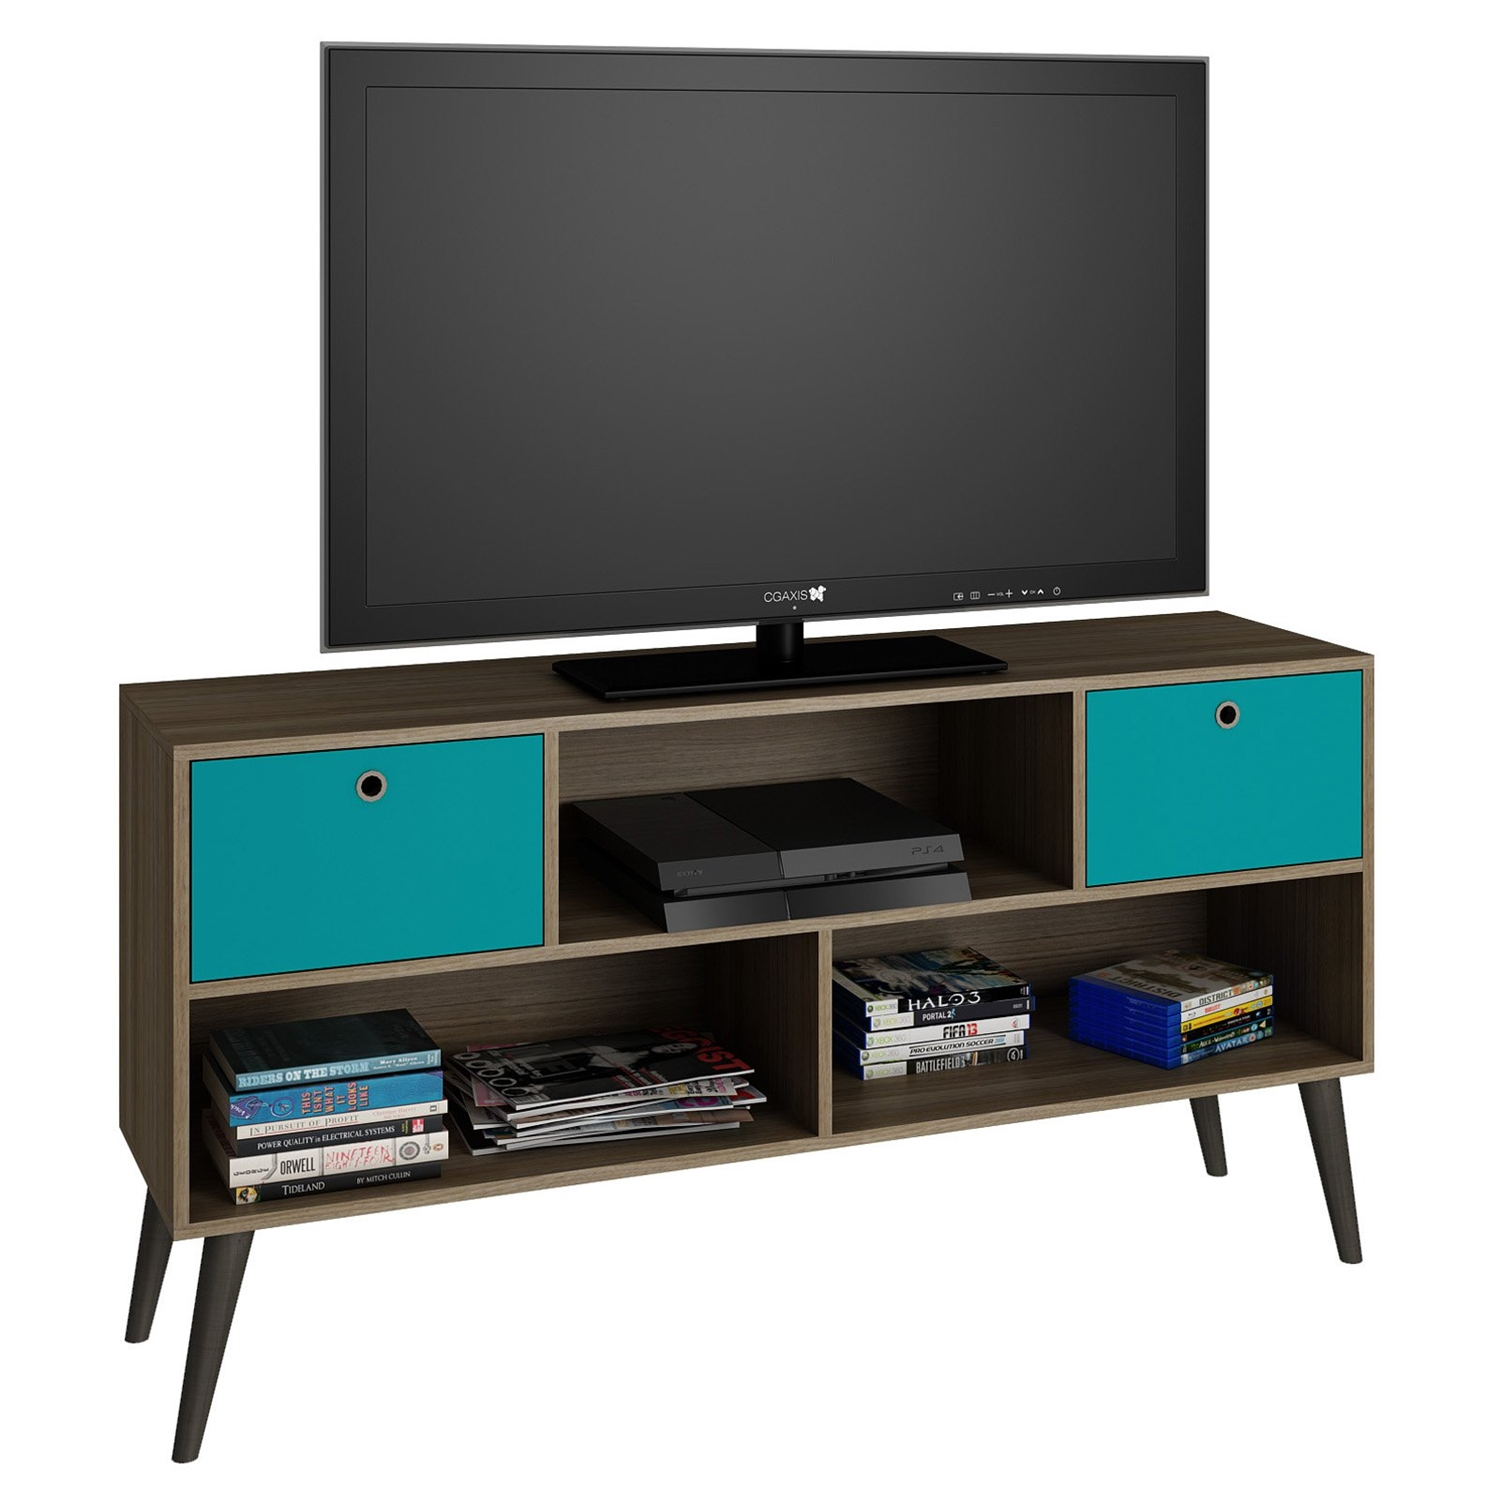 modern classic mid century tv stand entertainment center in oak aqua grey wood finish - Tv Stands Entertainment Centers